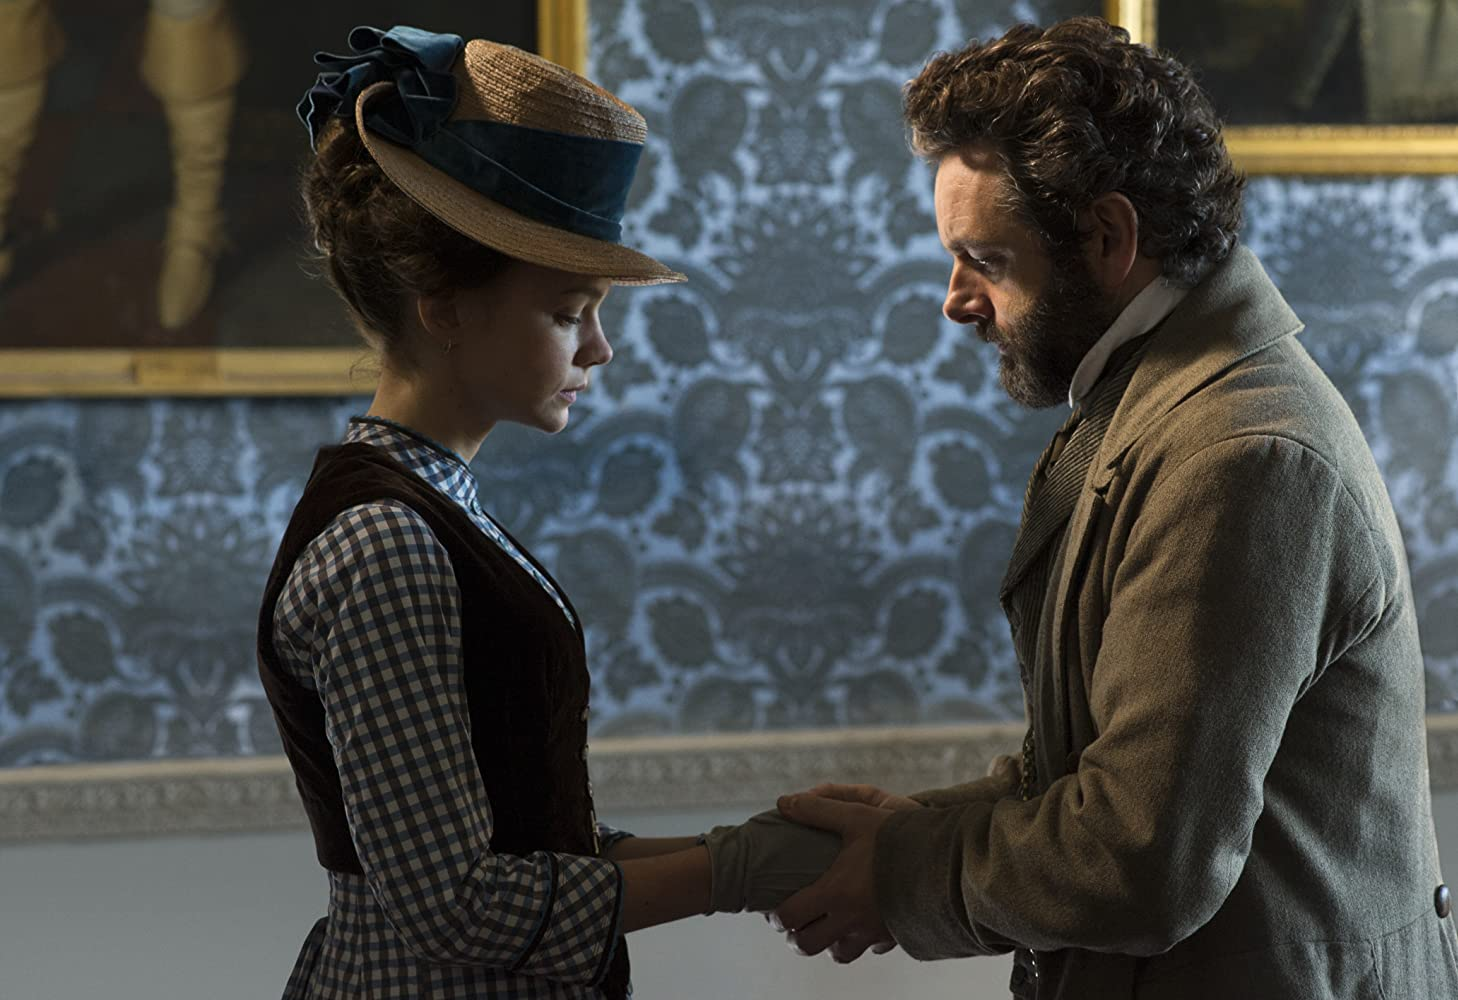 Michael Sheen and Carey Mulligan in Far from the Madding Crowd (2015)